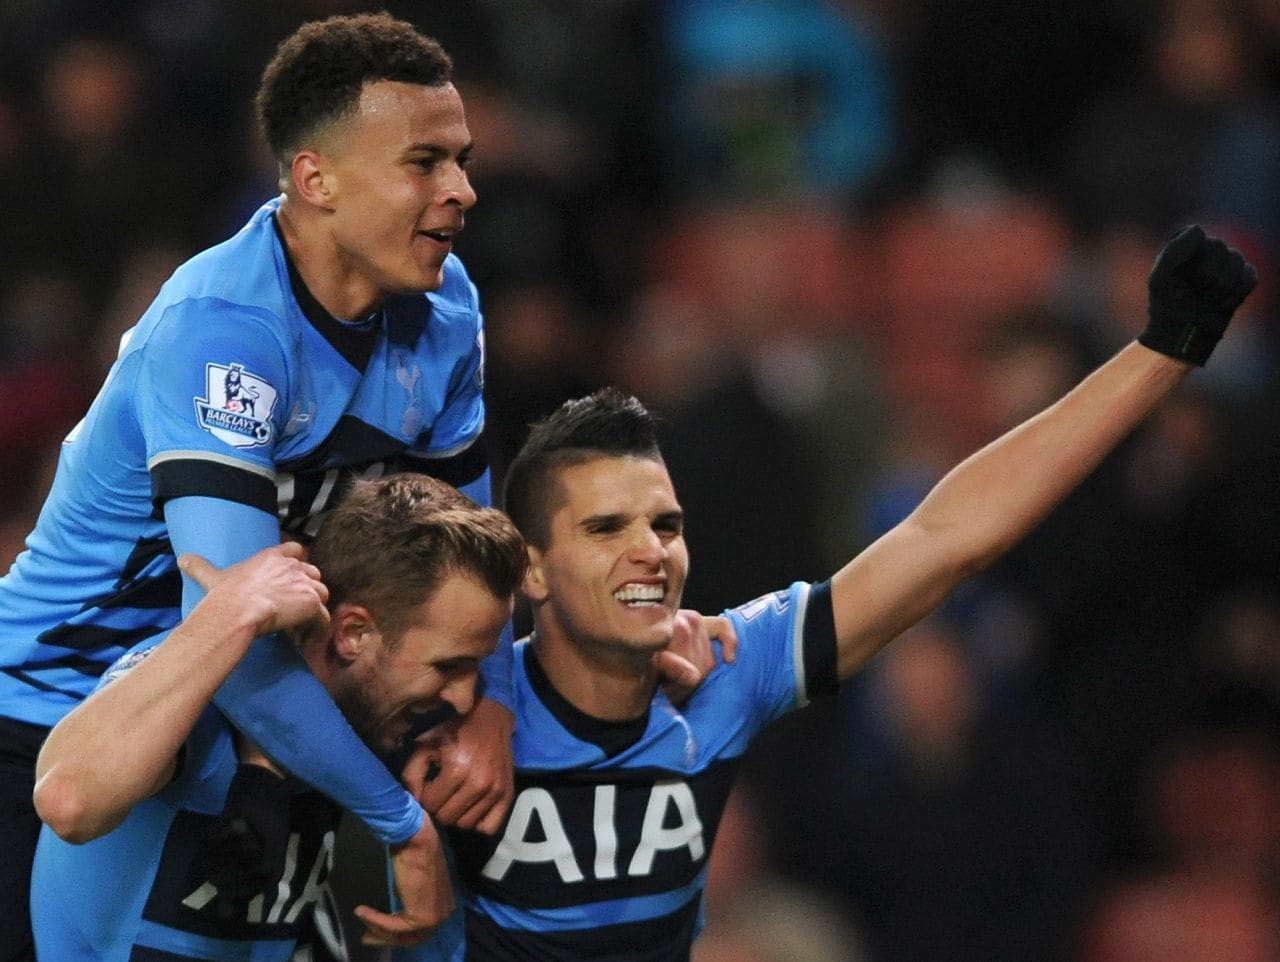 Tottenham's Harry Kane, bottom left, celebrates scoring a goal with Dele Alli, top, and Erik Lamela during the English Premier League soccer match between Stoke City and Tottenham Hotspur at the Britannia Stadium, Stoke on Trent, England, Monday, April 18, 2016. (AP Photo/Rui Vieira)